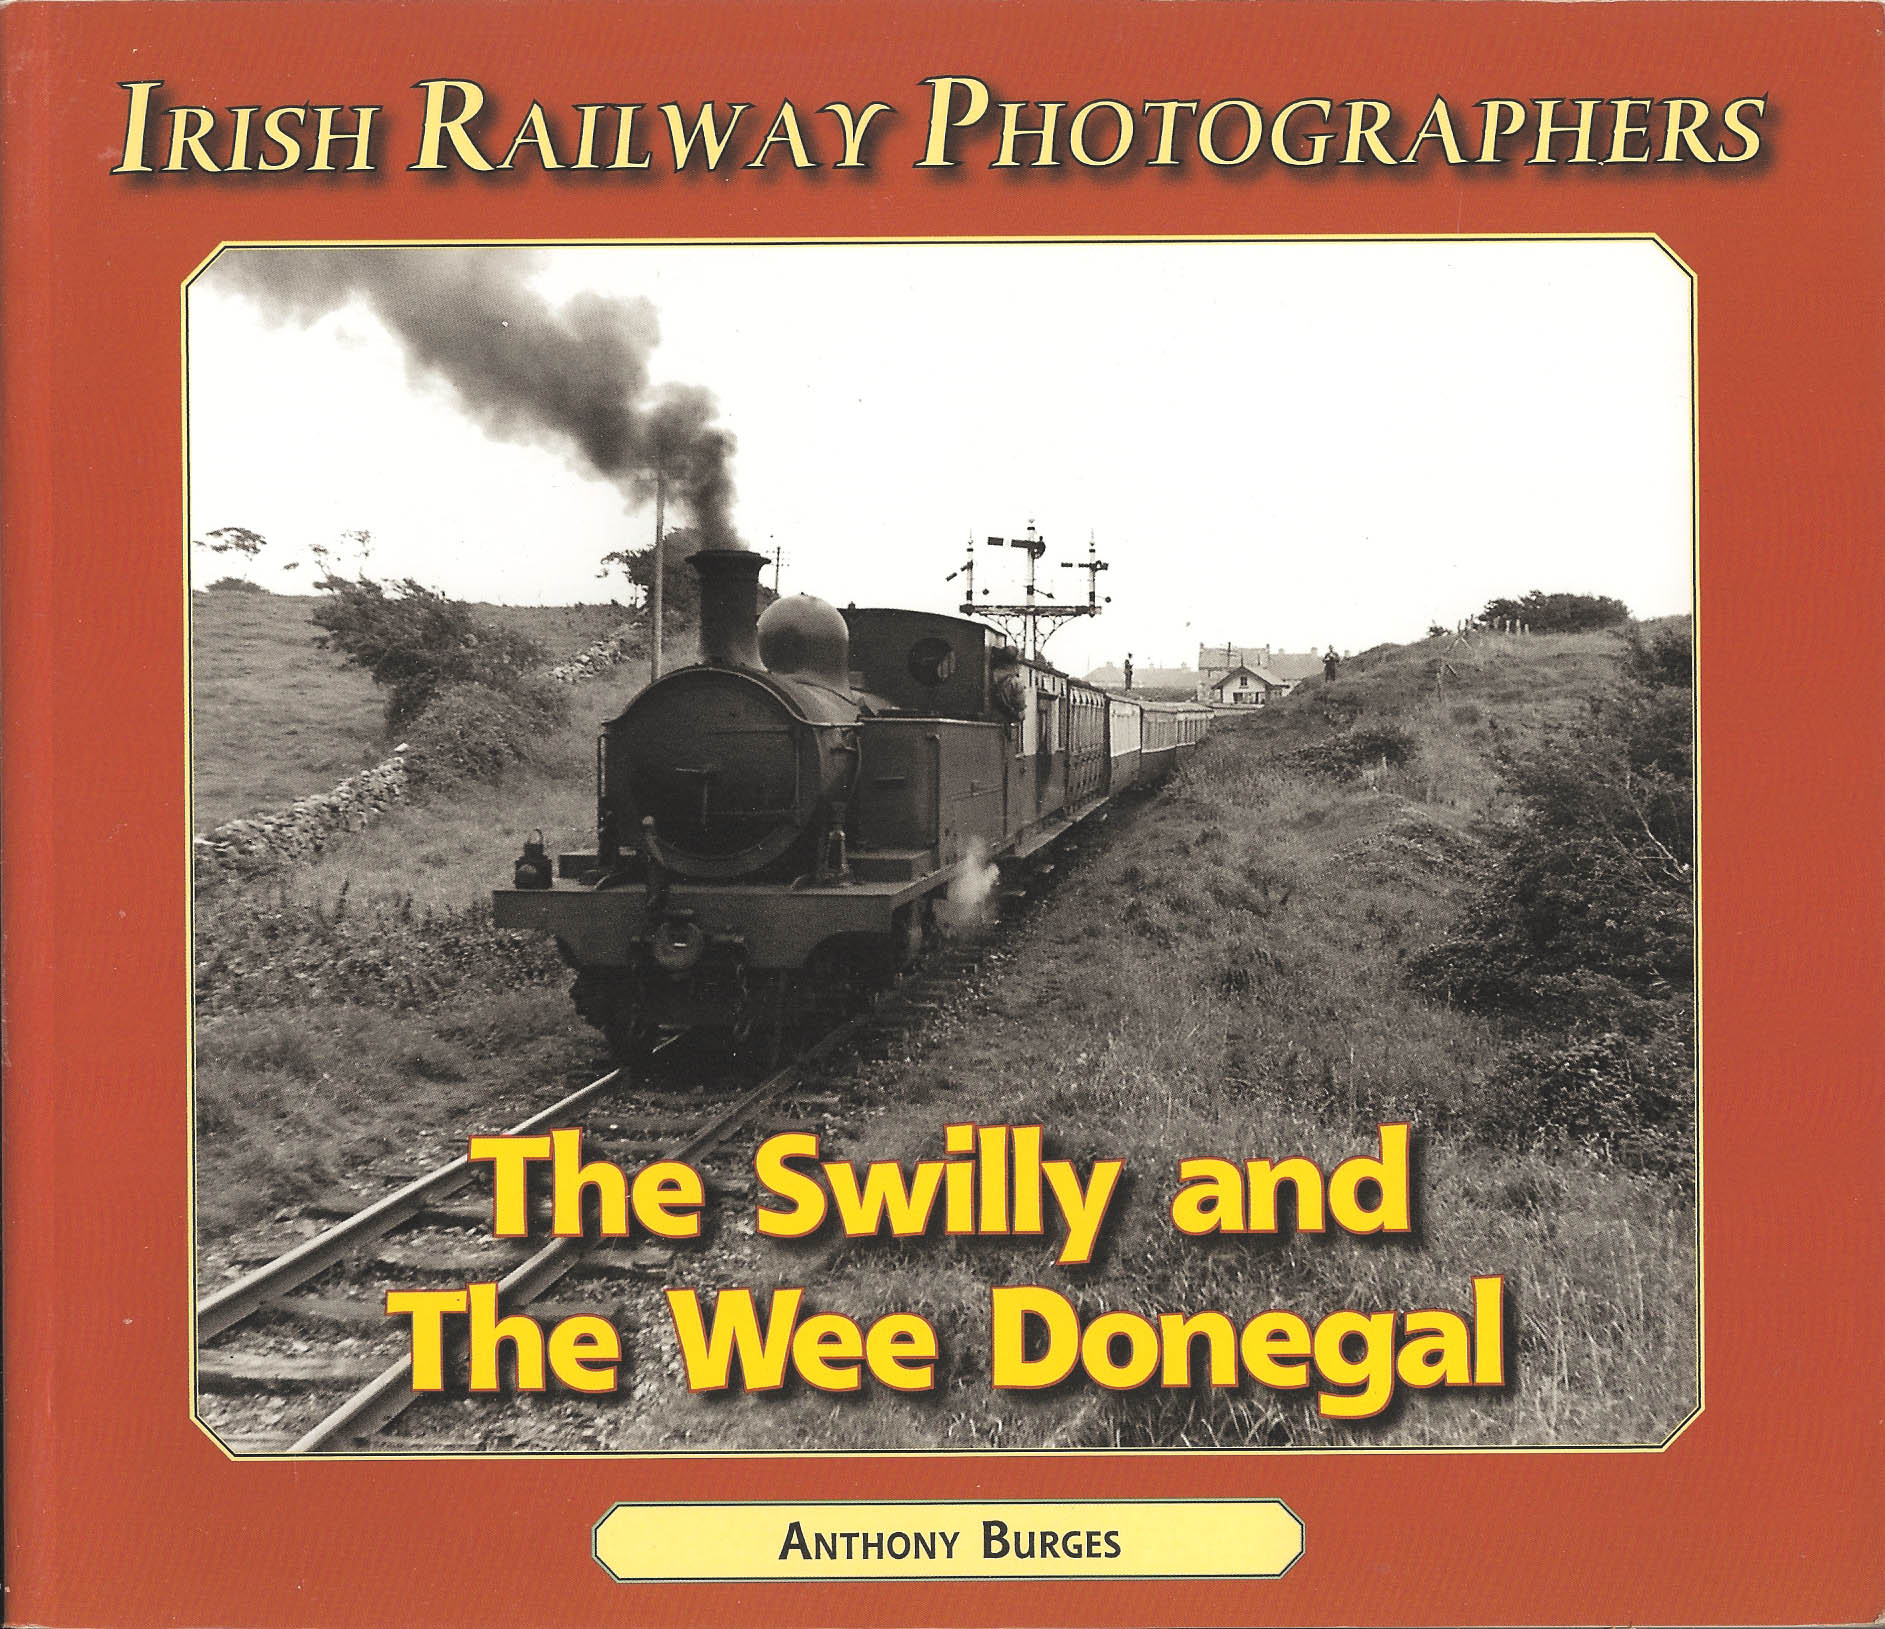 Irish Railway Photographers The Swilly and The Wee Donegal